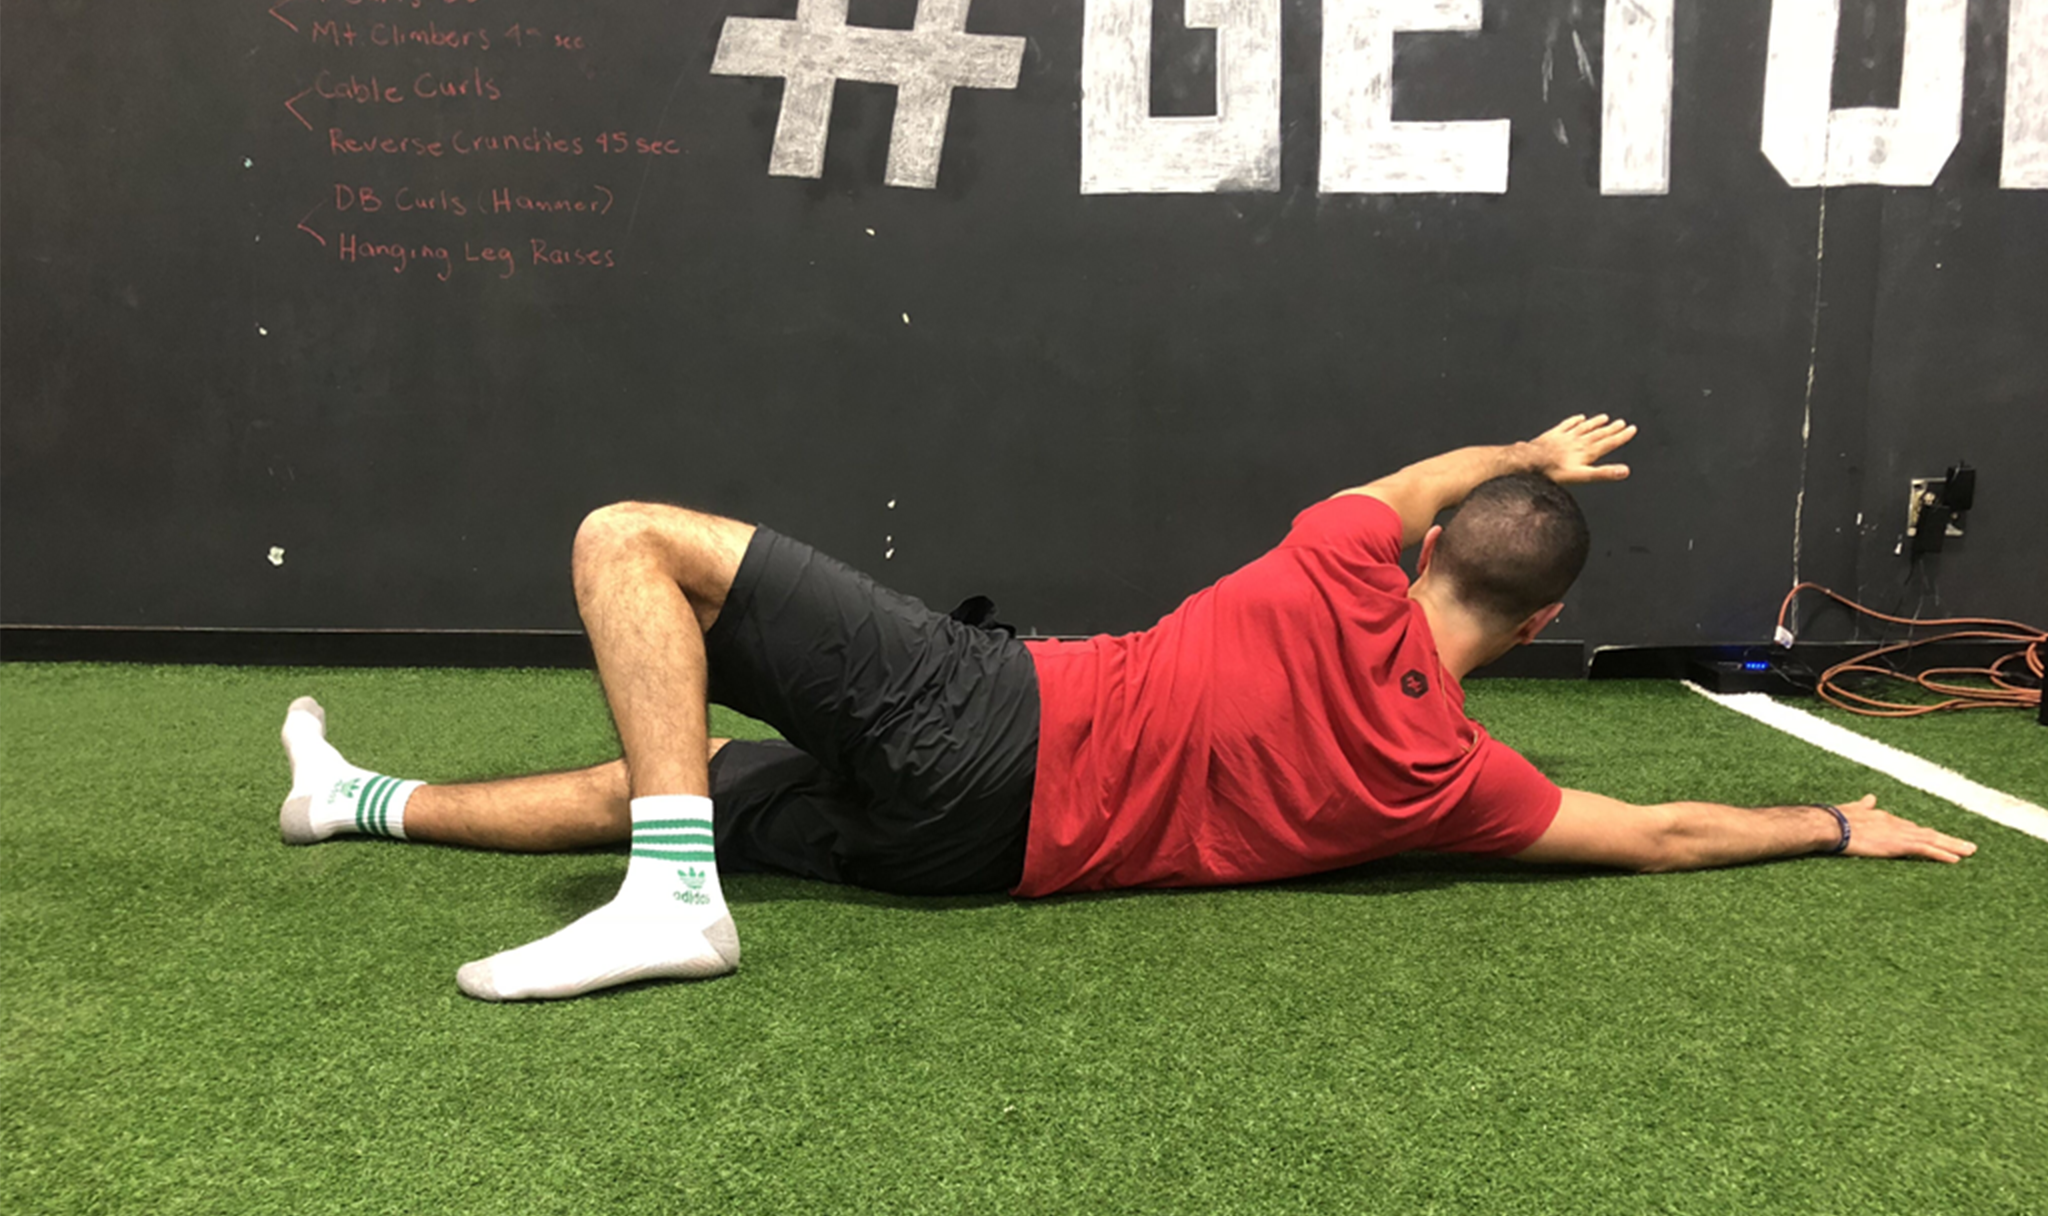 End motion: lead rotation back to belly with the same arm as your bent knee